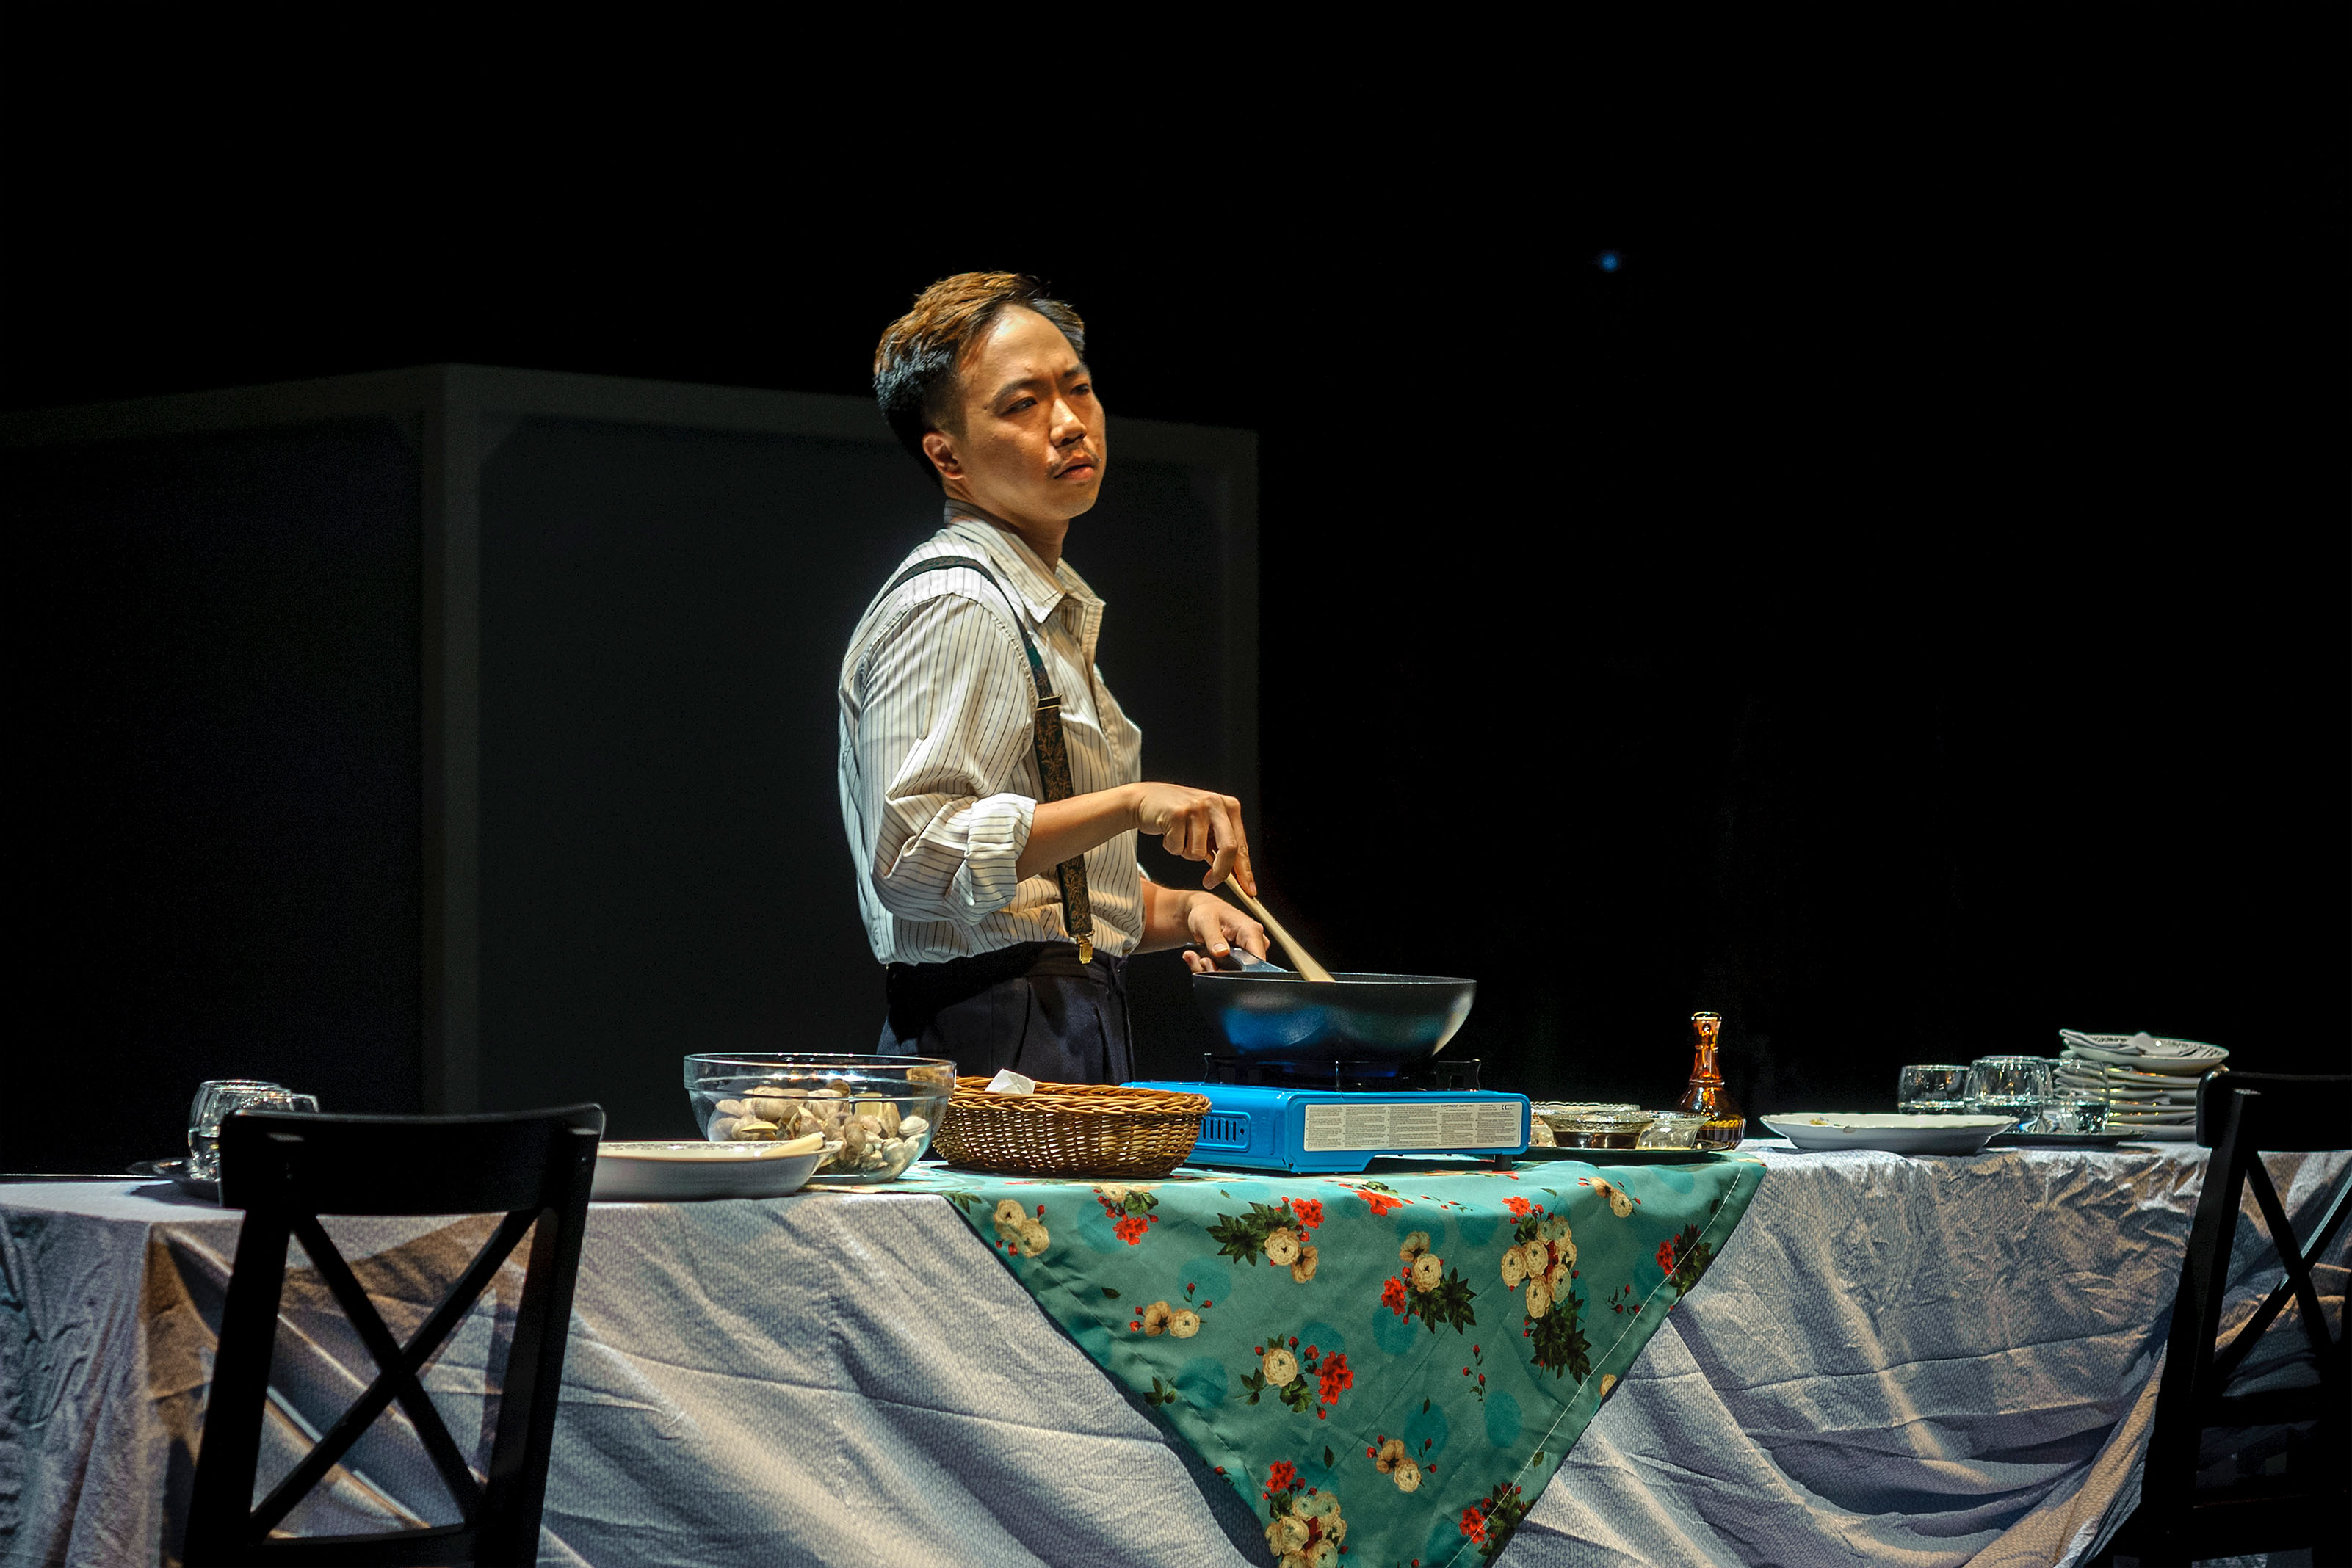 In one of these scenes, a Hong Kong actor cooks up a meal of seafood in Hong Kong style live on stage and invites impromptu six audience members to share the meal.